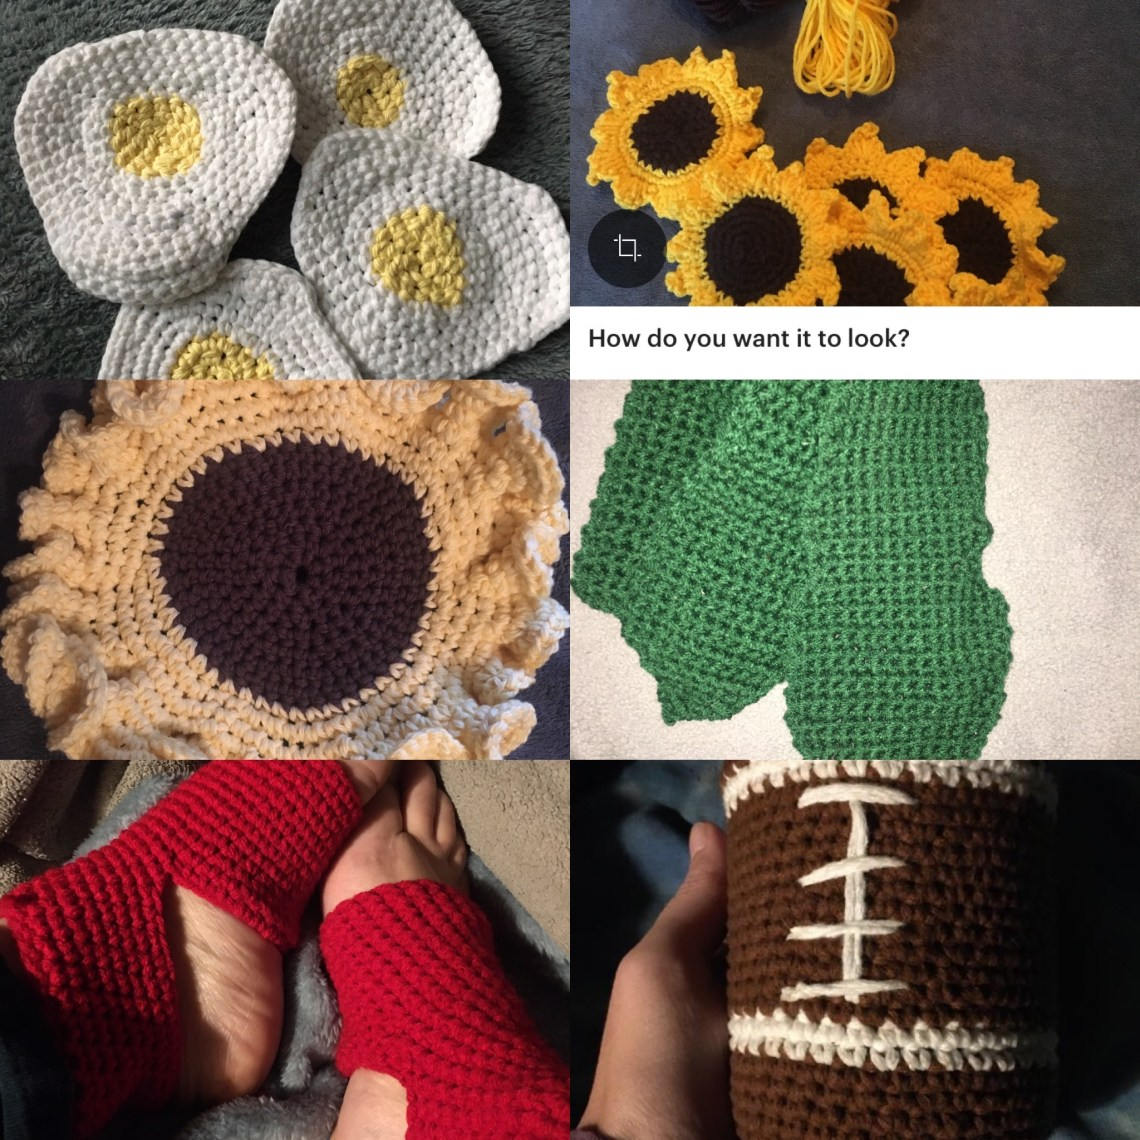 a collage of photos of crocheted: egg coasters, sunflower coasters, sunflower trivet, and a green snake scarf.